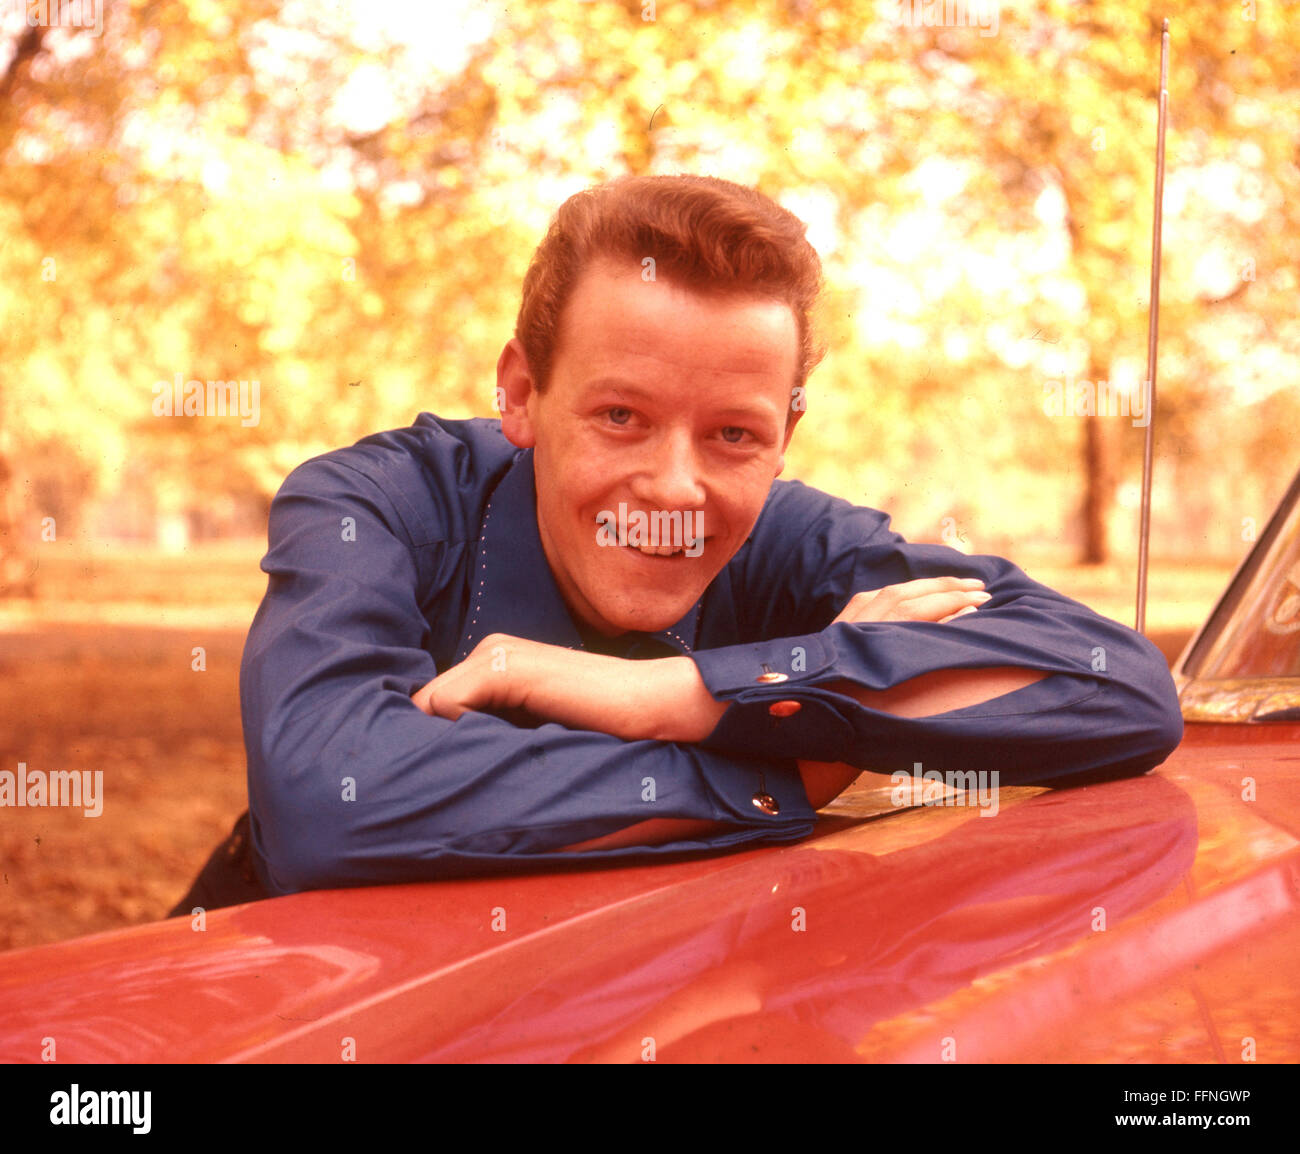 CRAIG DOUGLAS English pop singer about 1959 - Stock Image